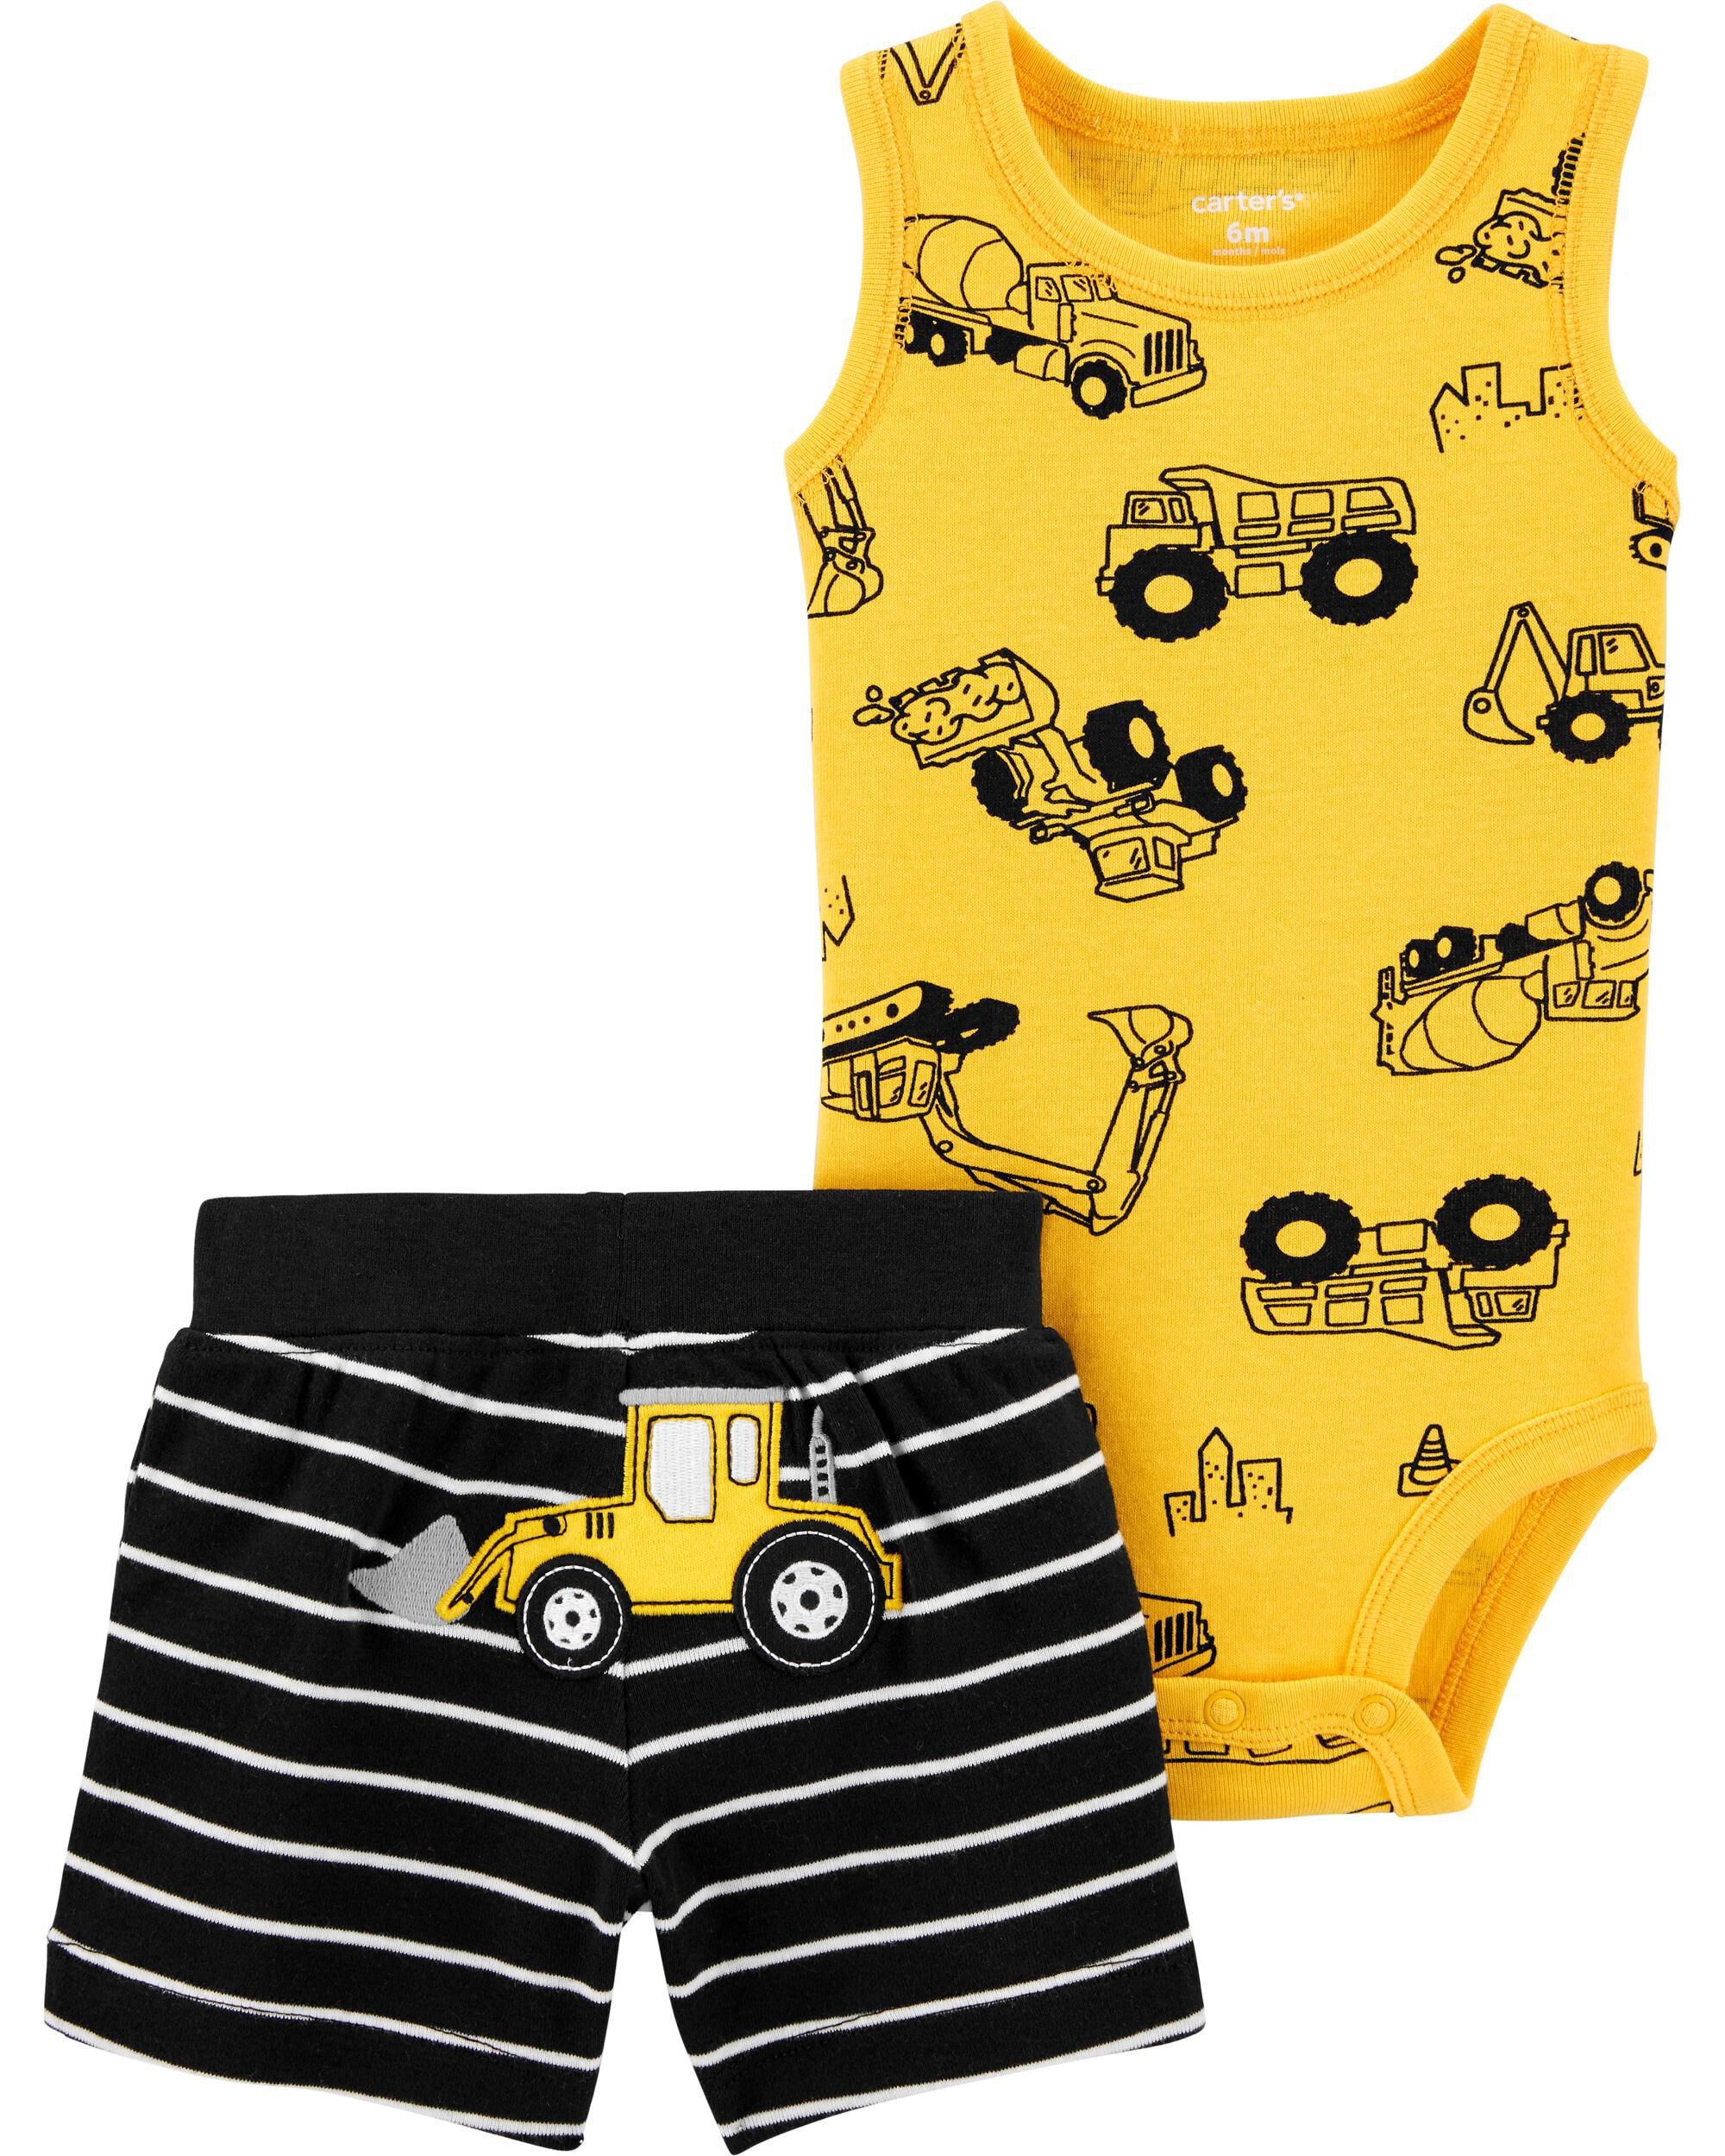 Badger Design Baby Boy Dungarees and Top Set